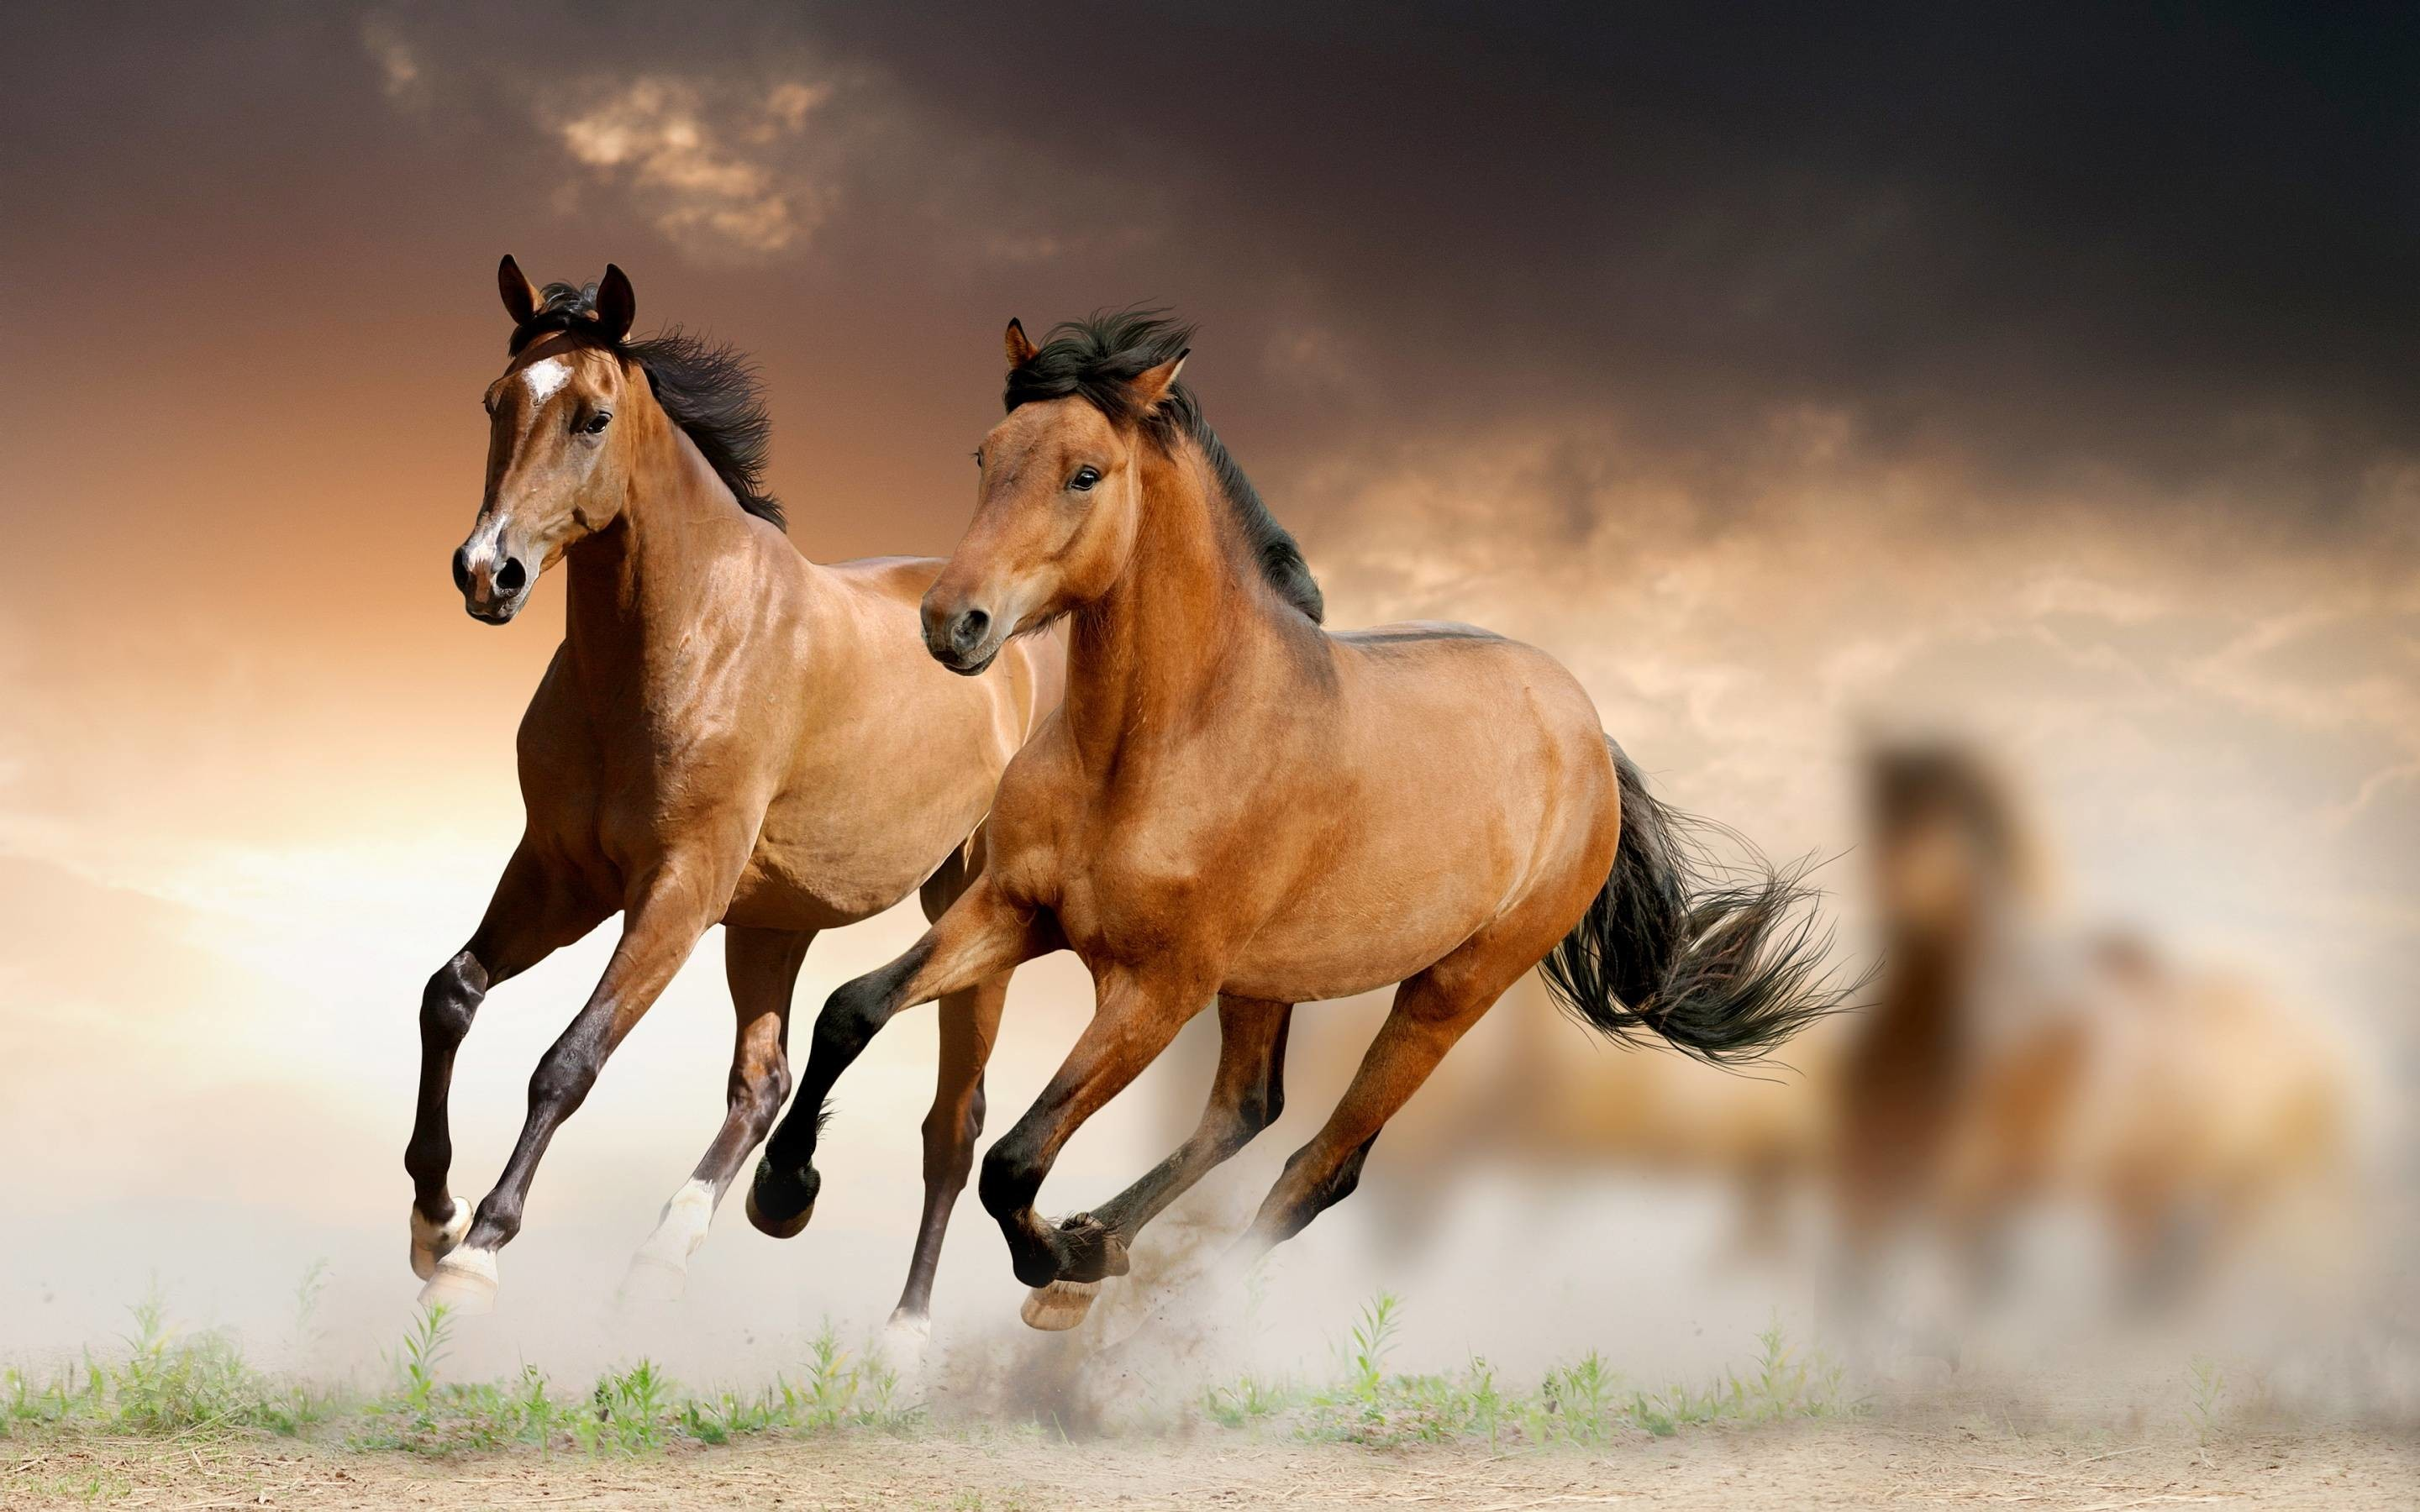 Running Horses Wallpaper (63+ images) - photo#6